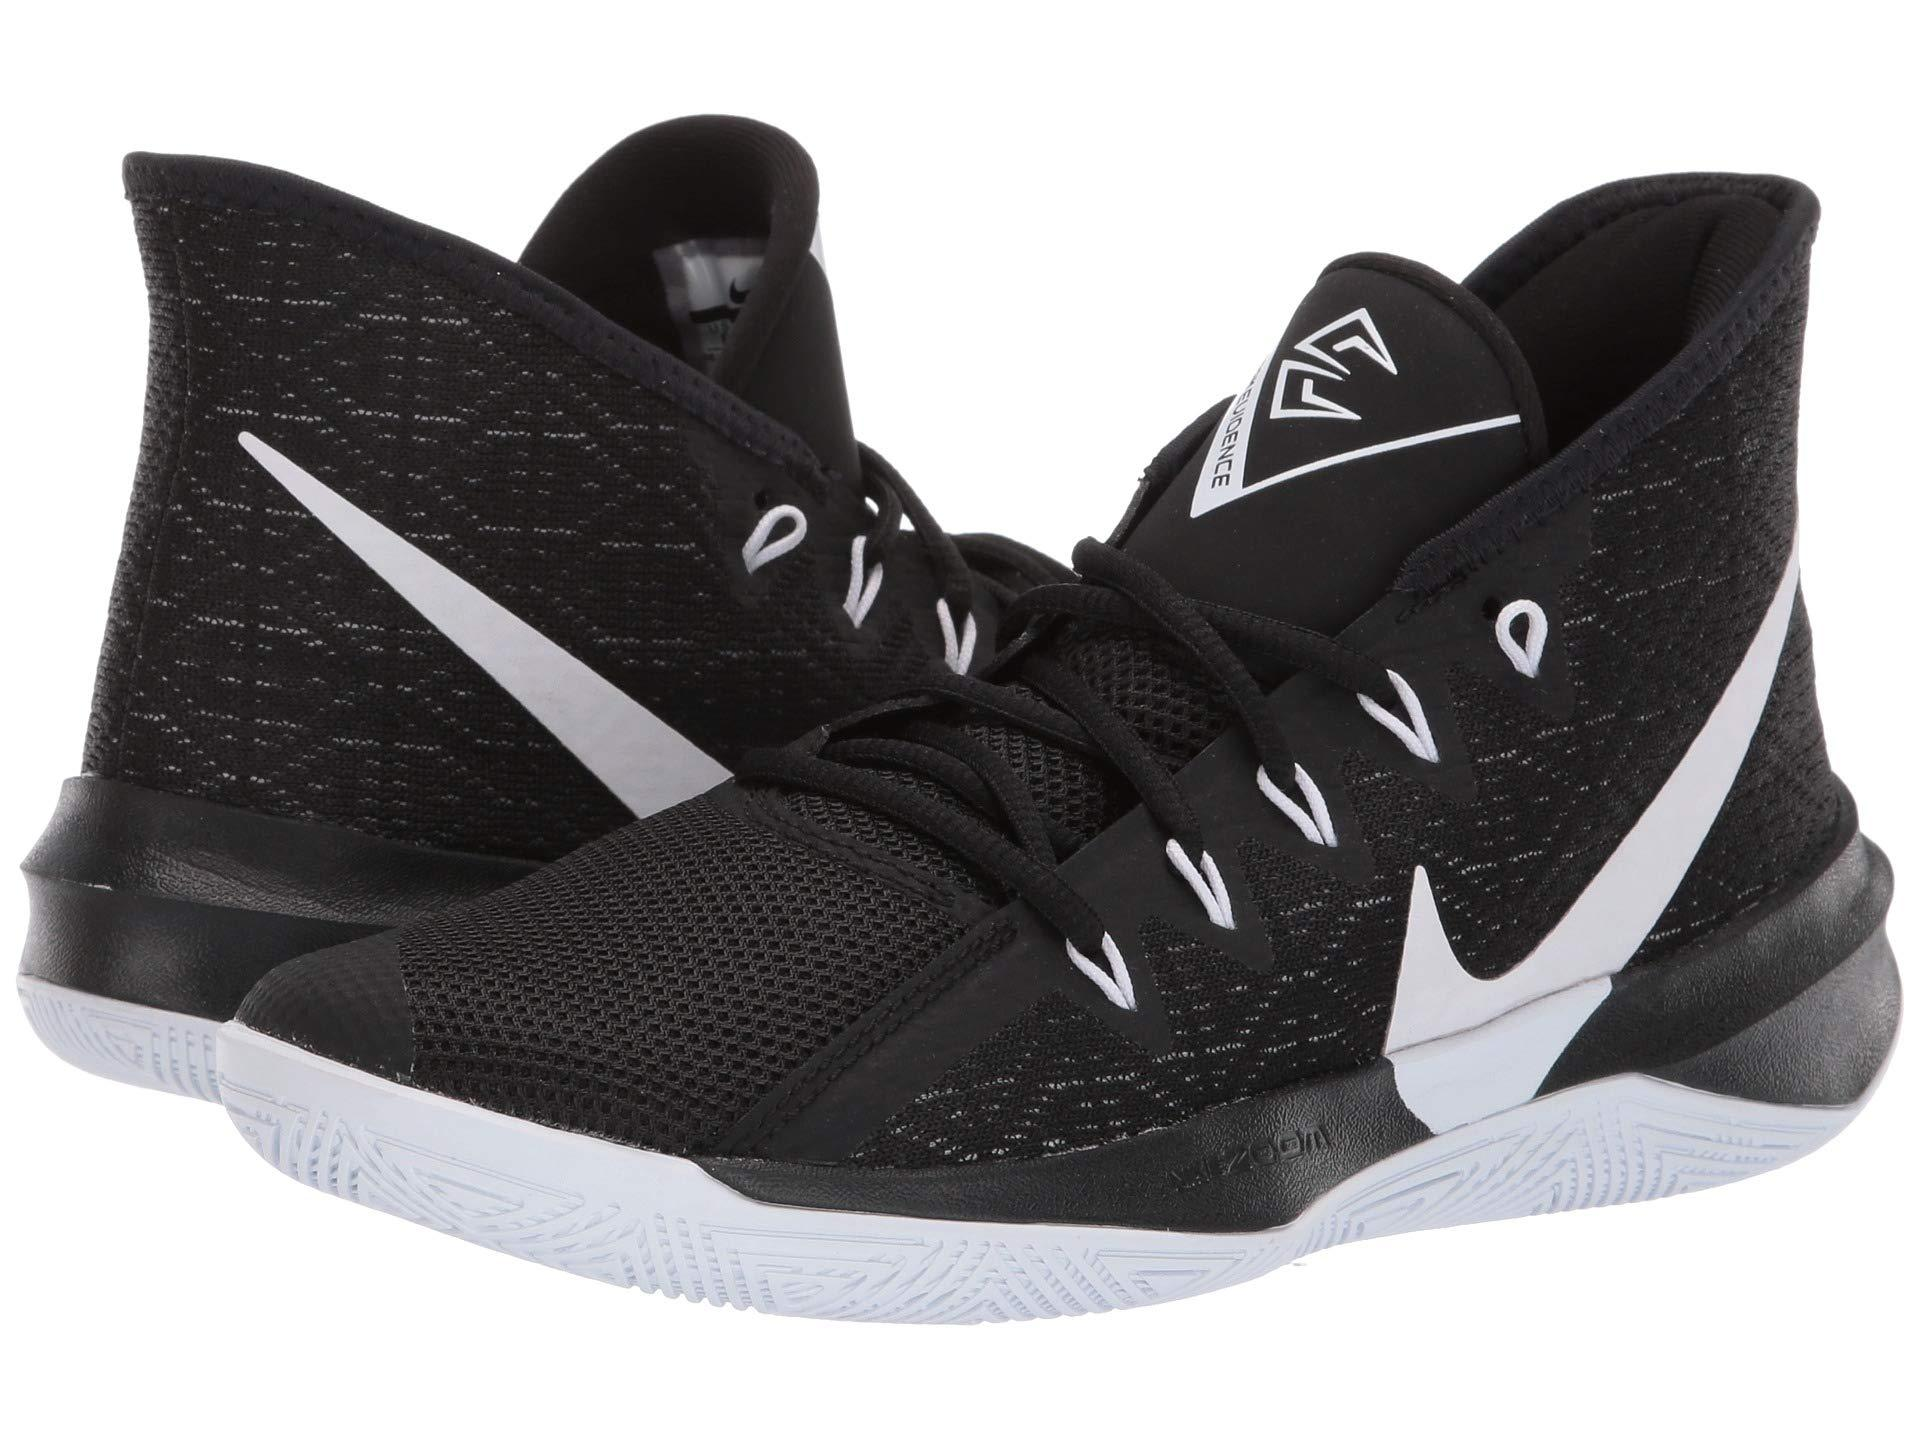 c344b75ccb3 Nike Zoom Evidence Iii in Black for Men - Save 7% - Lyst